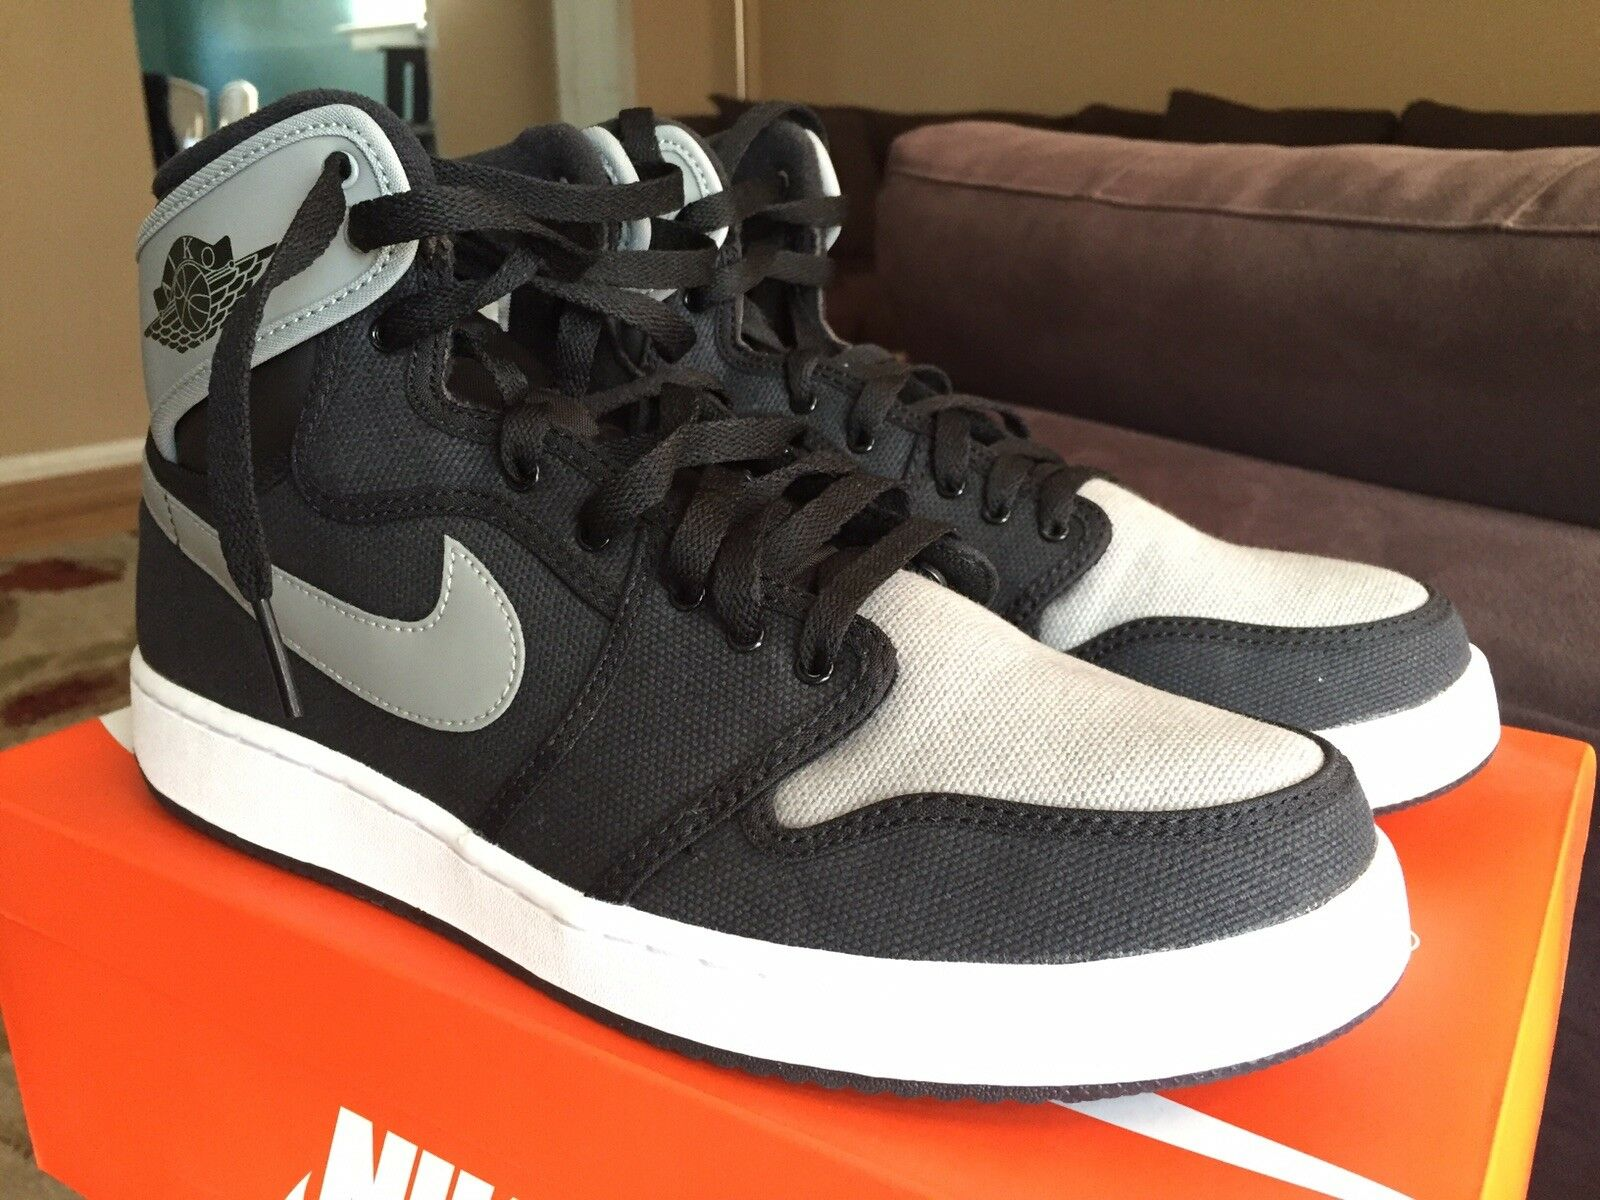 Nike Air Jordan 1 AJKO High Knockout Shadow Mens Sz 10.5 New shoes for men and women, limited time discount